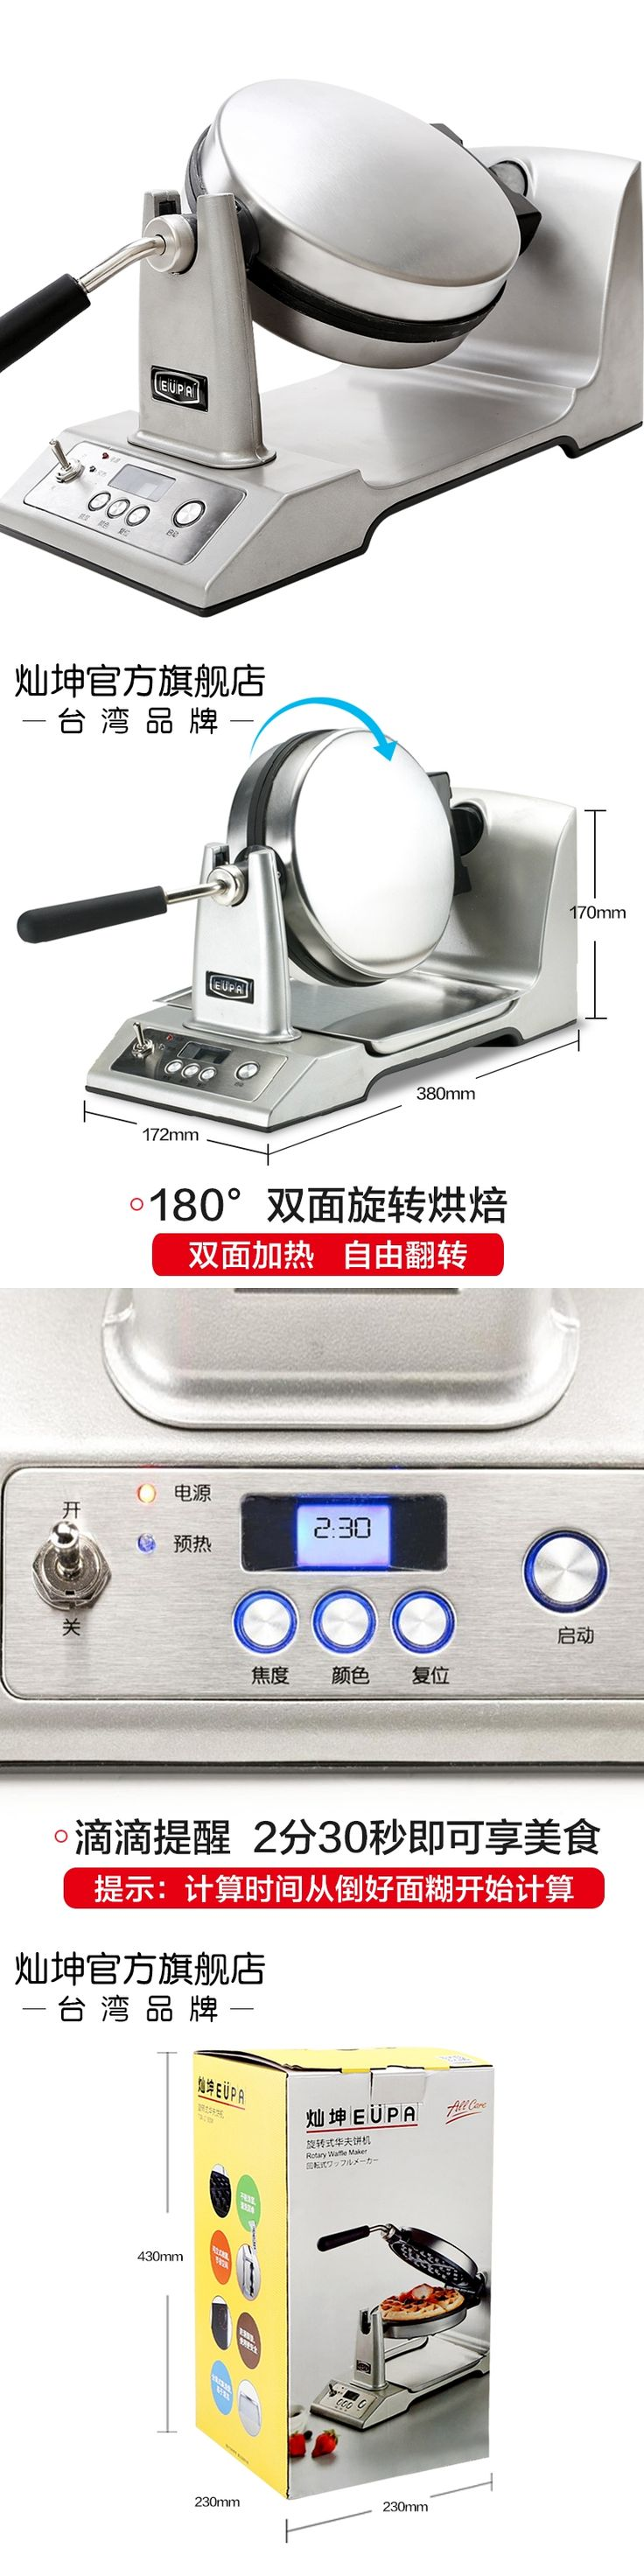 Eupa Electric Rotary Waffle Maker Multifunction Electric Baking Pan Oven Baked Cake Pancake Machine TSK-2193W